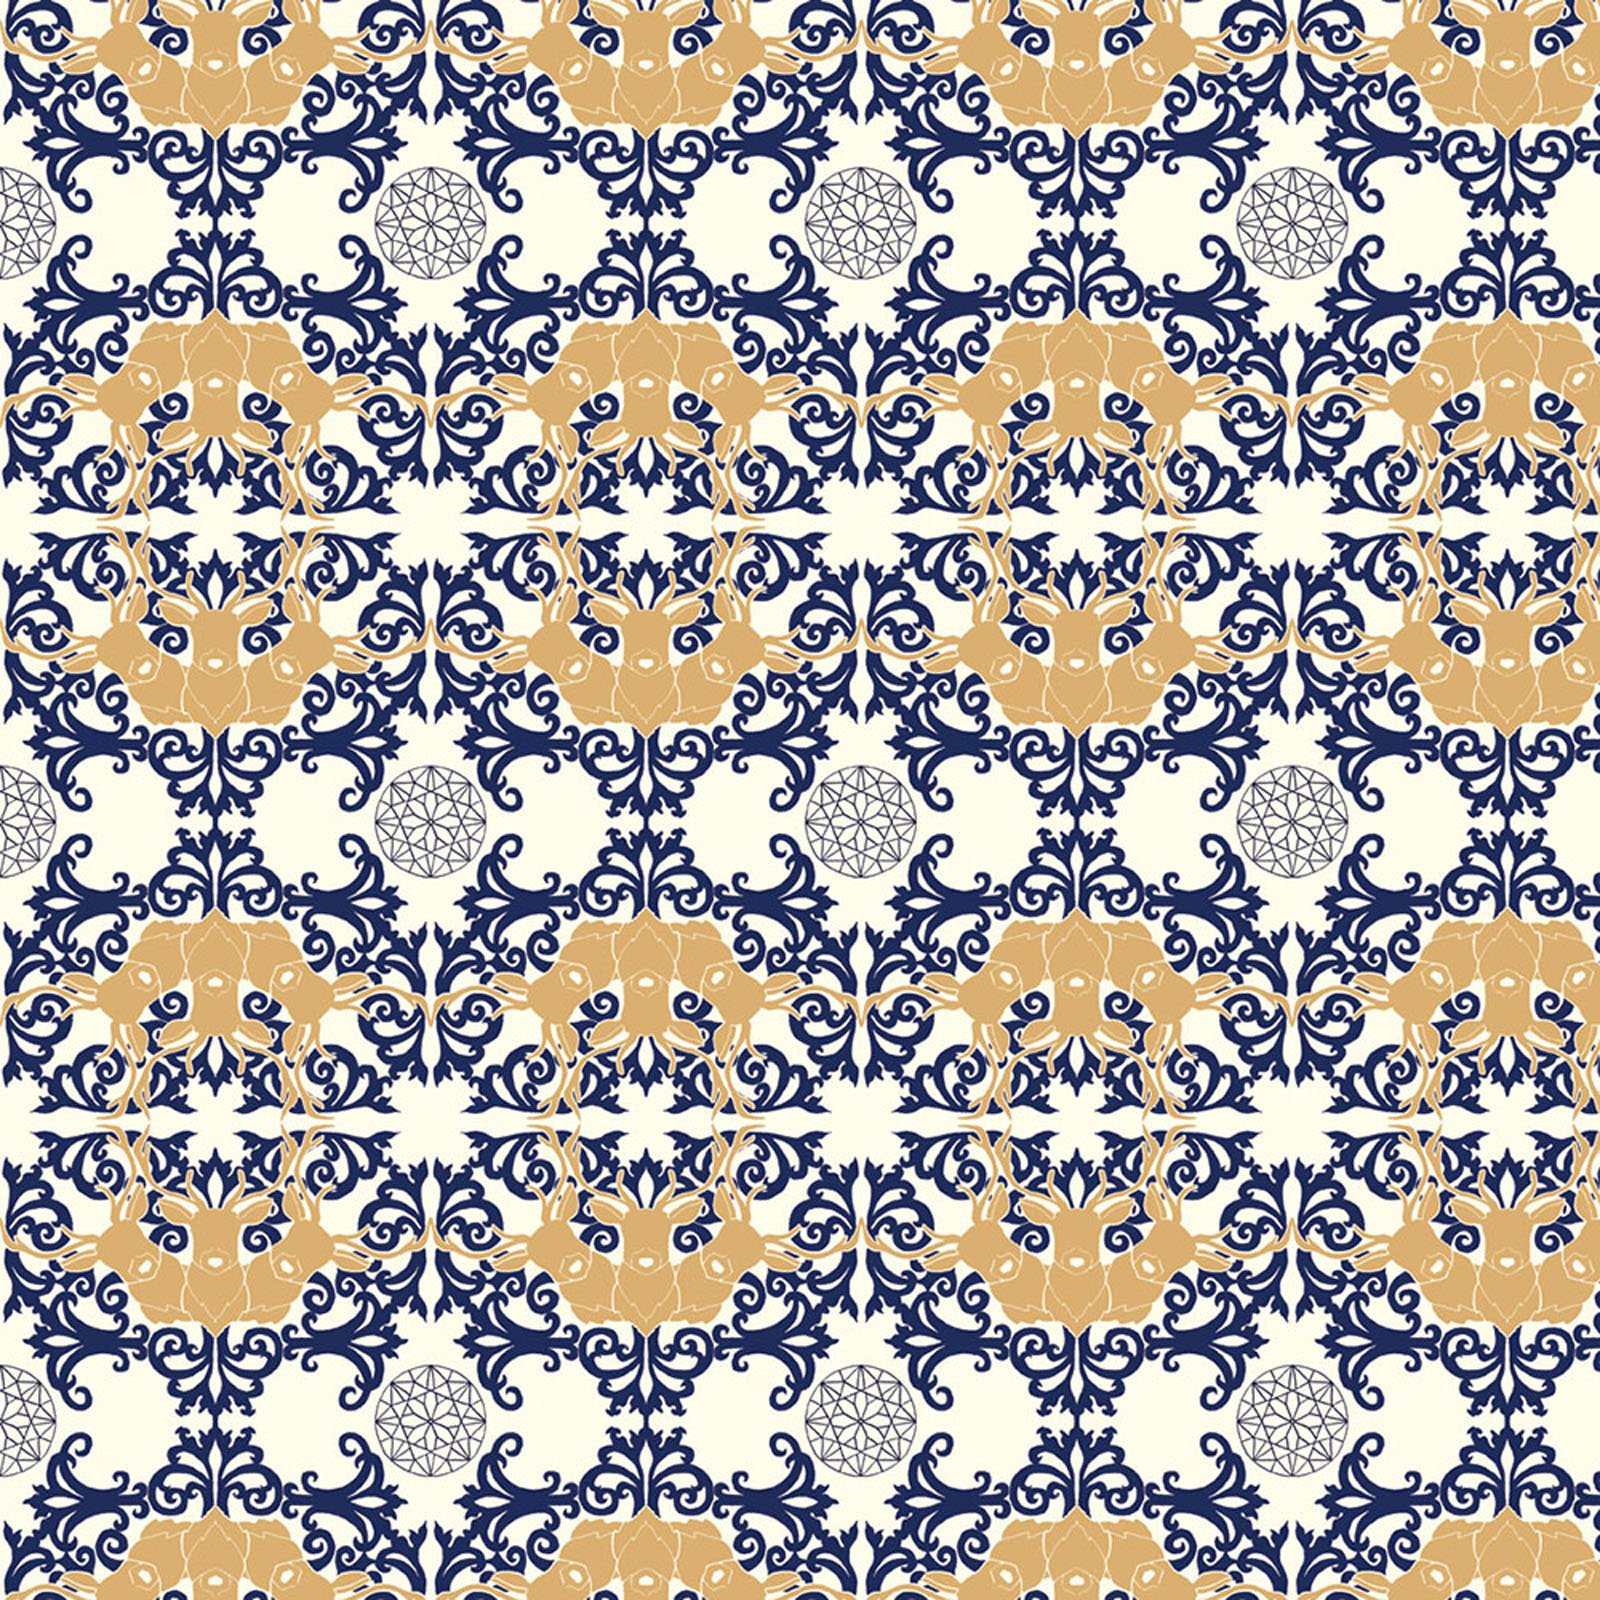 Mod Nouveau- Honed Lace- Jay-Cyn- Birch Fabrics- Organic Cotton